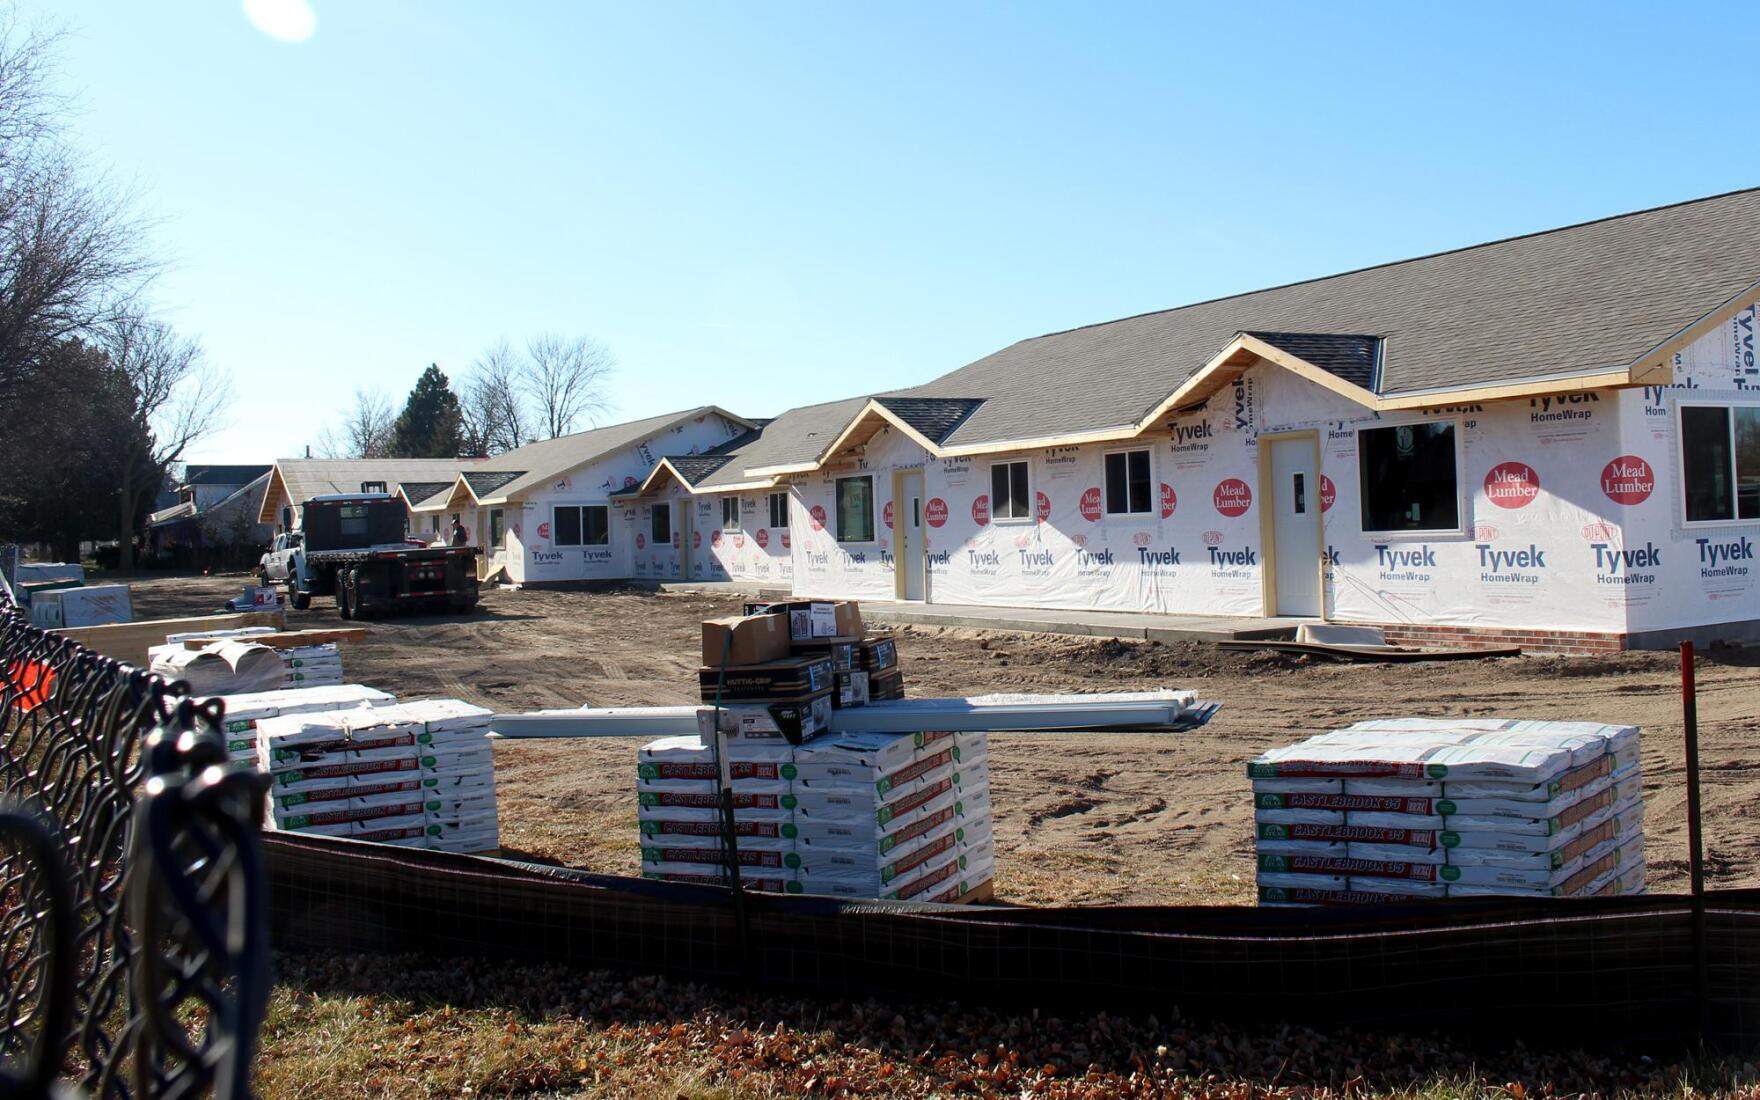 New apartments under construction in Holdrege, Nebraska, where an elementary school used to be.